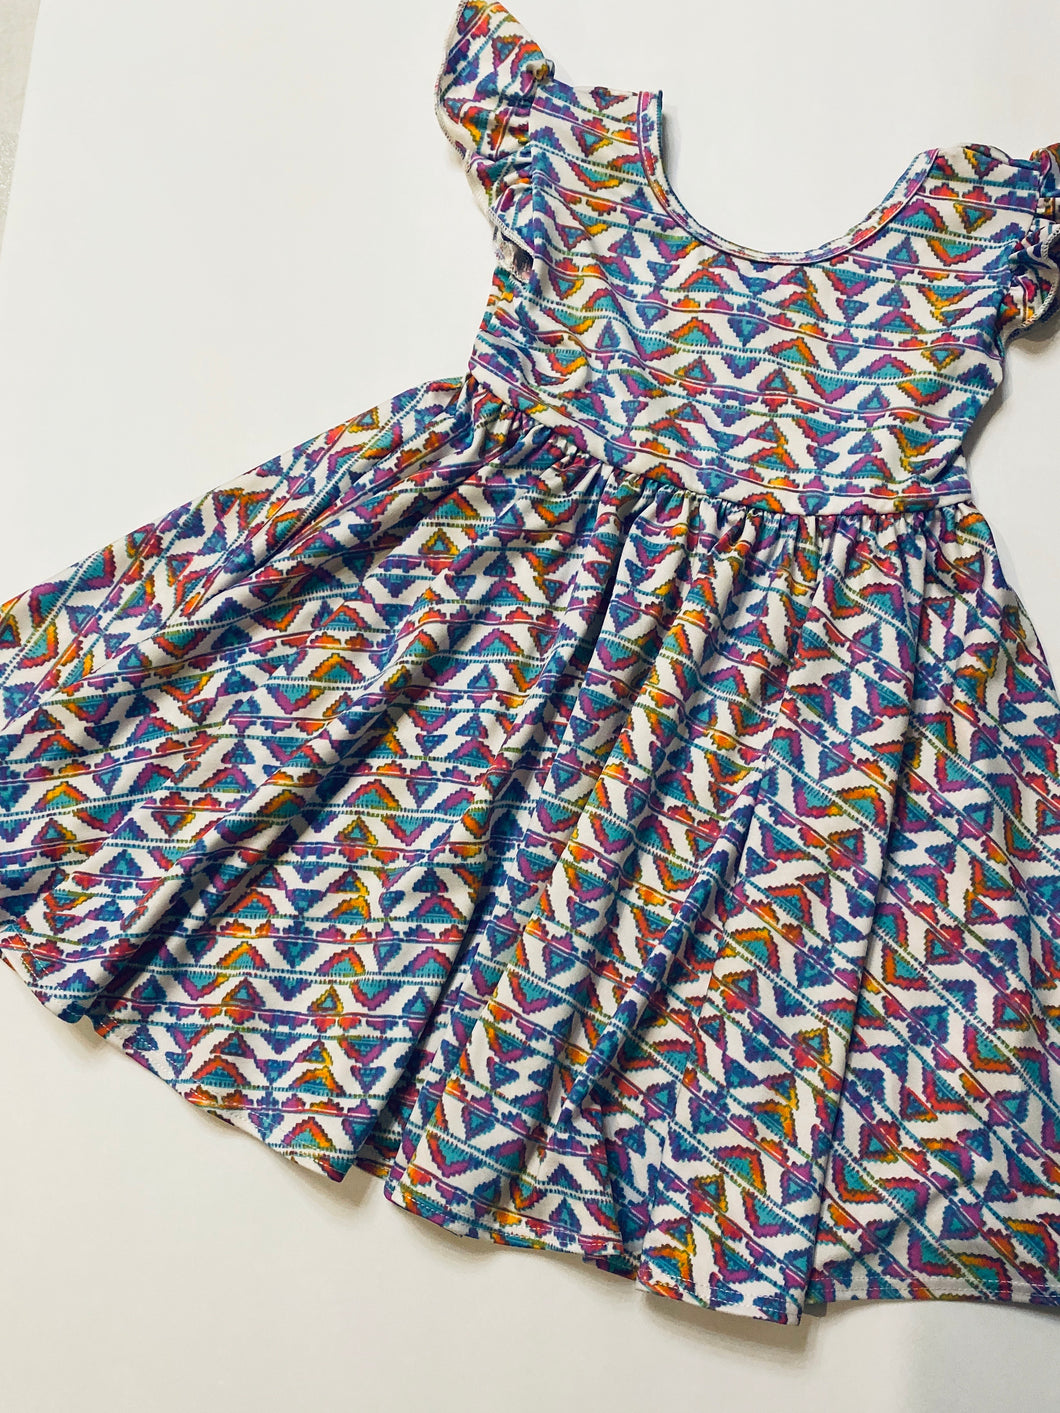 Southwest Print Dress Size 2T - Empire Style Dress